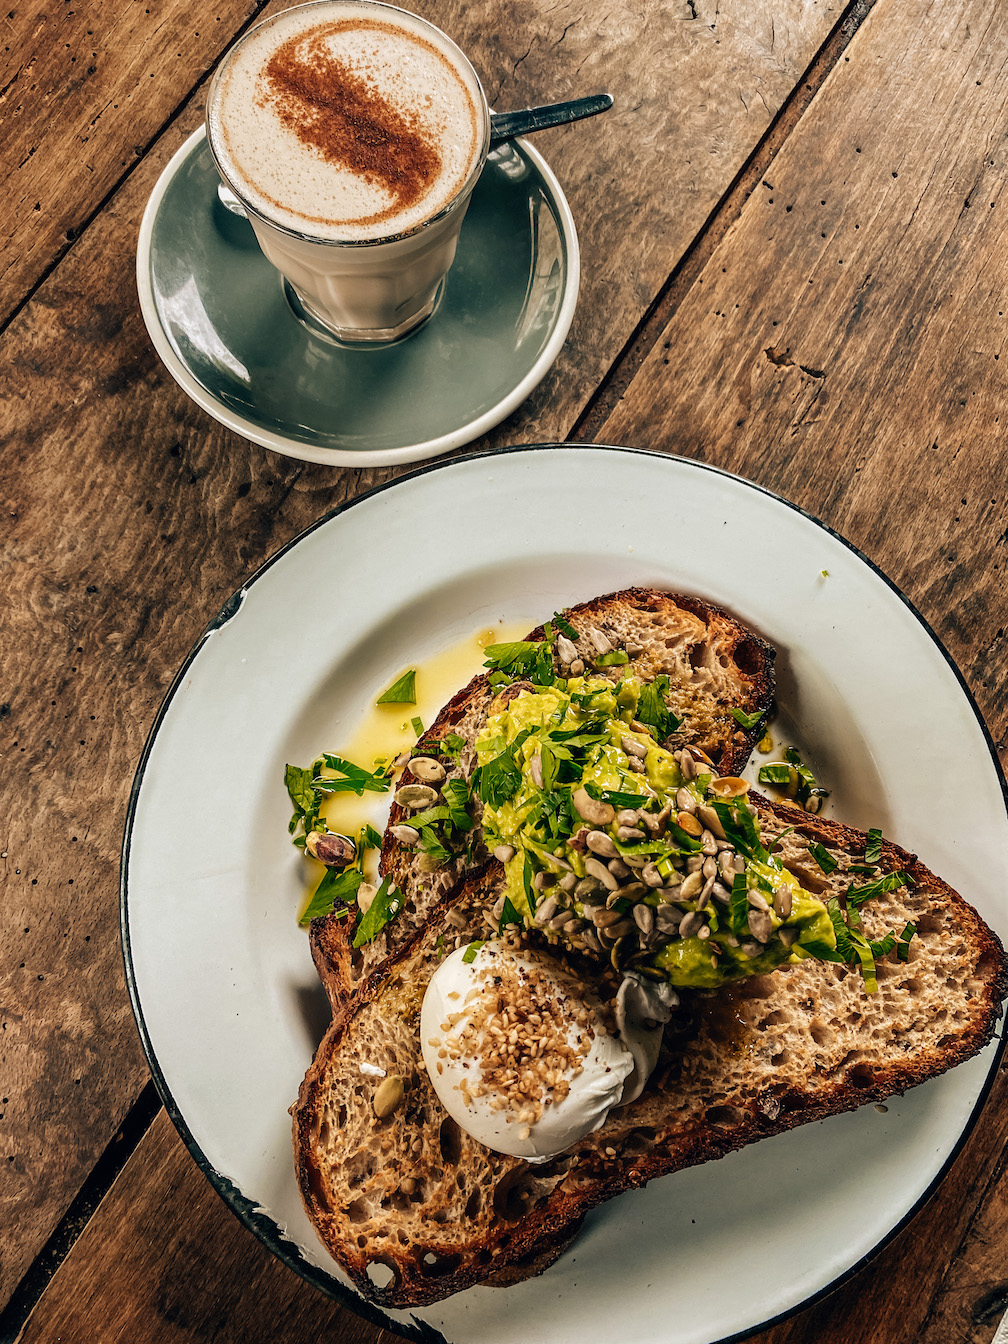 Paddock Bakery - best cafe and brunch on Gold Coast